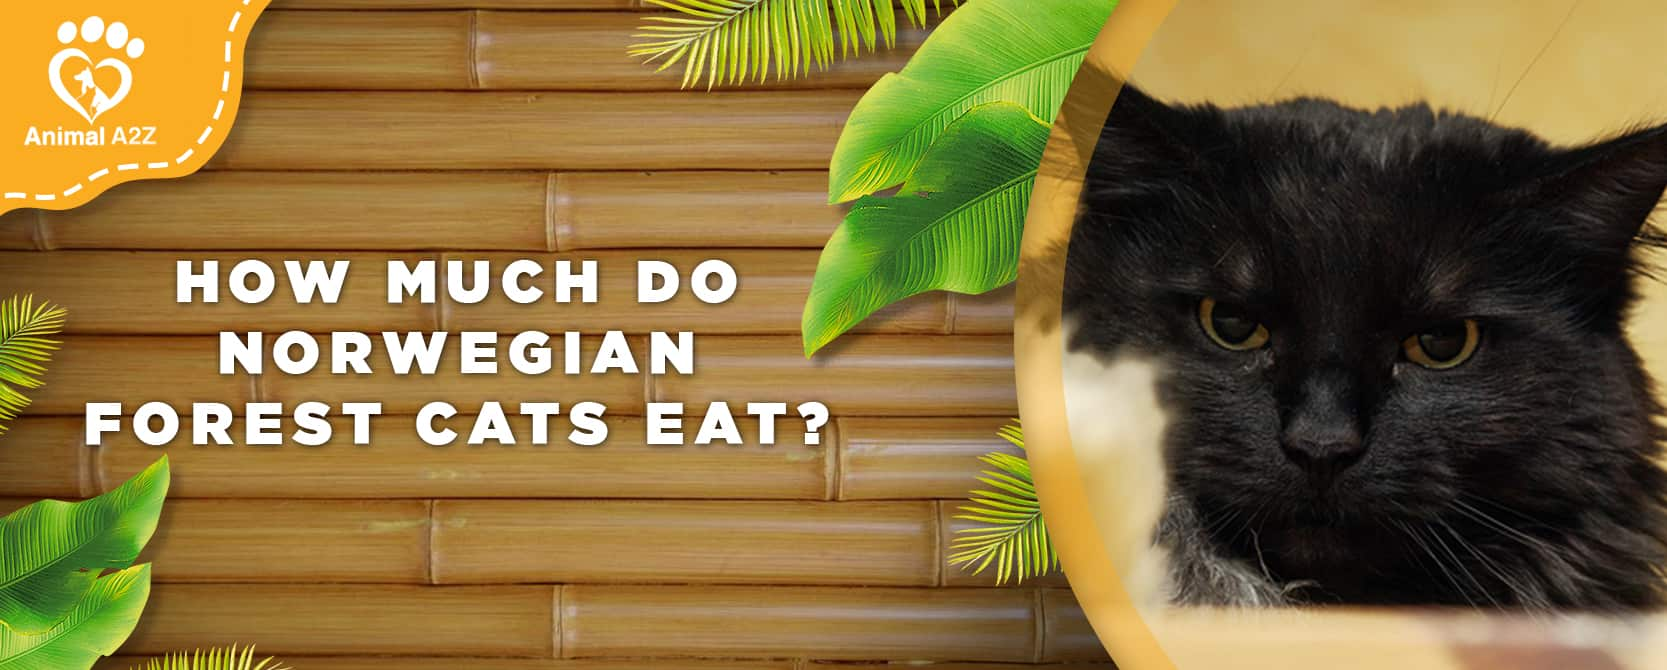 How much do Norwegian Forest cats eat?